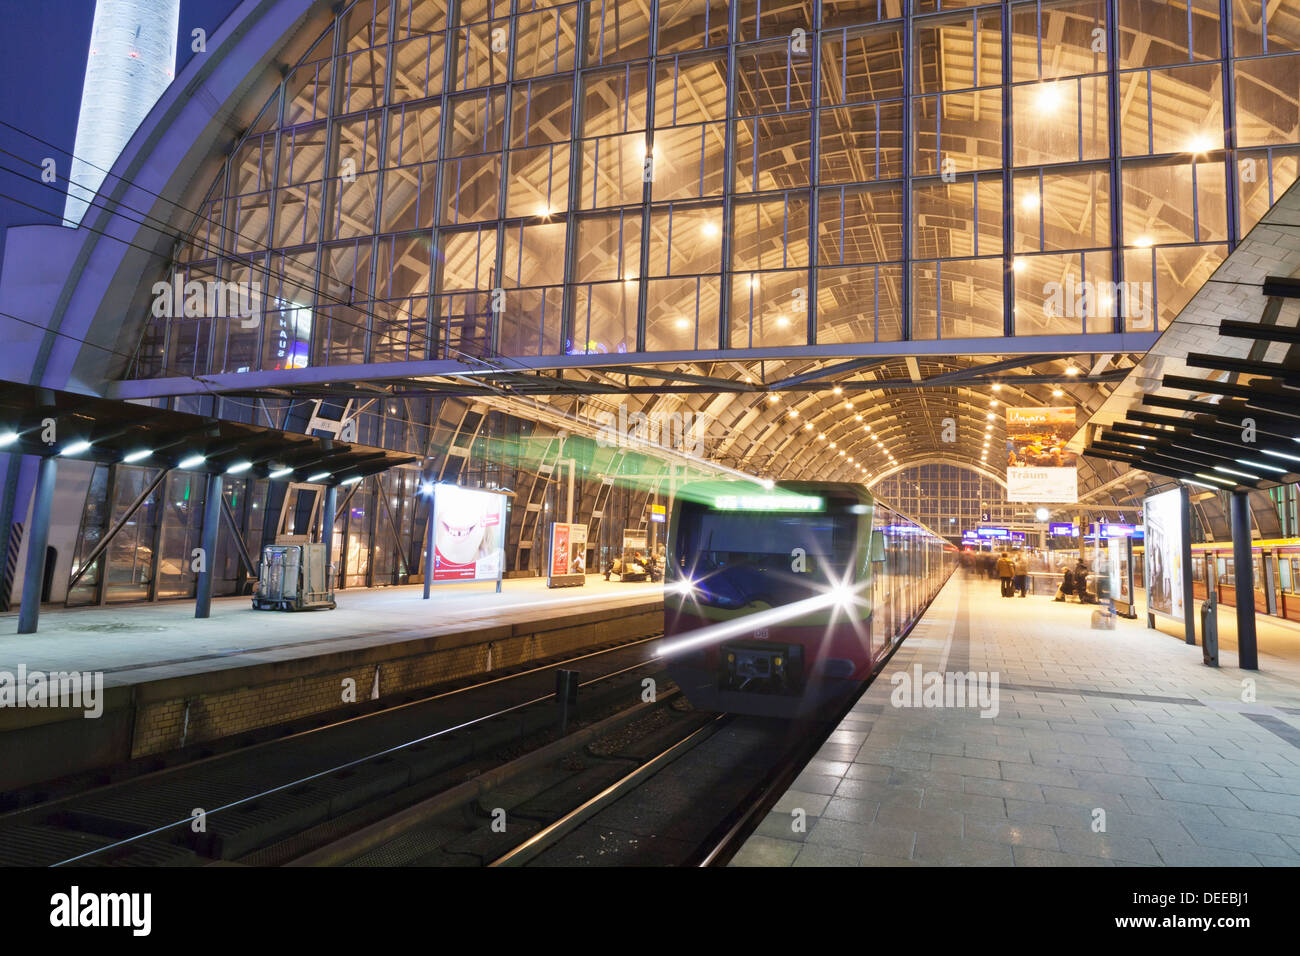 Incoming train, Alexanderplatz S Bahn station, Berlin, Germany, Europe Stock Photo